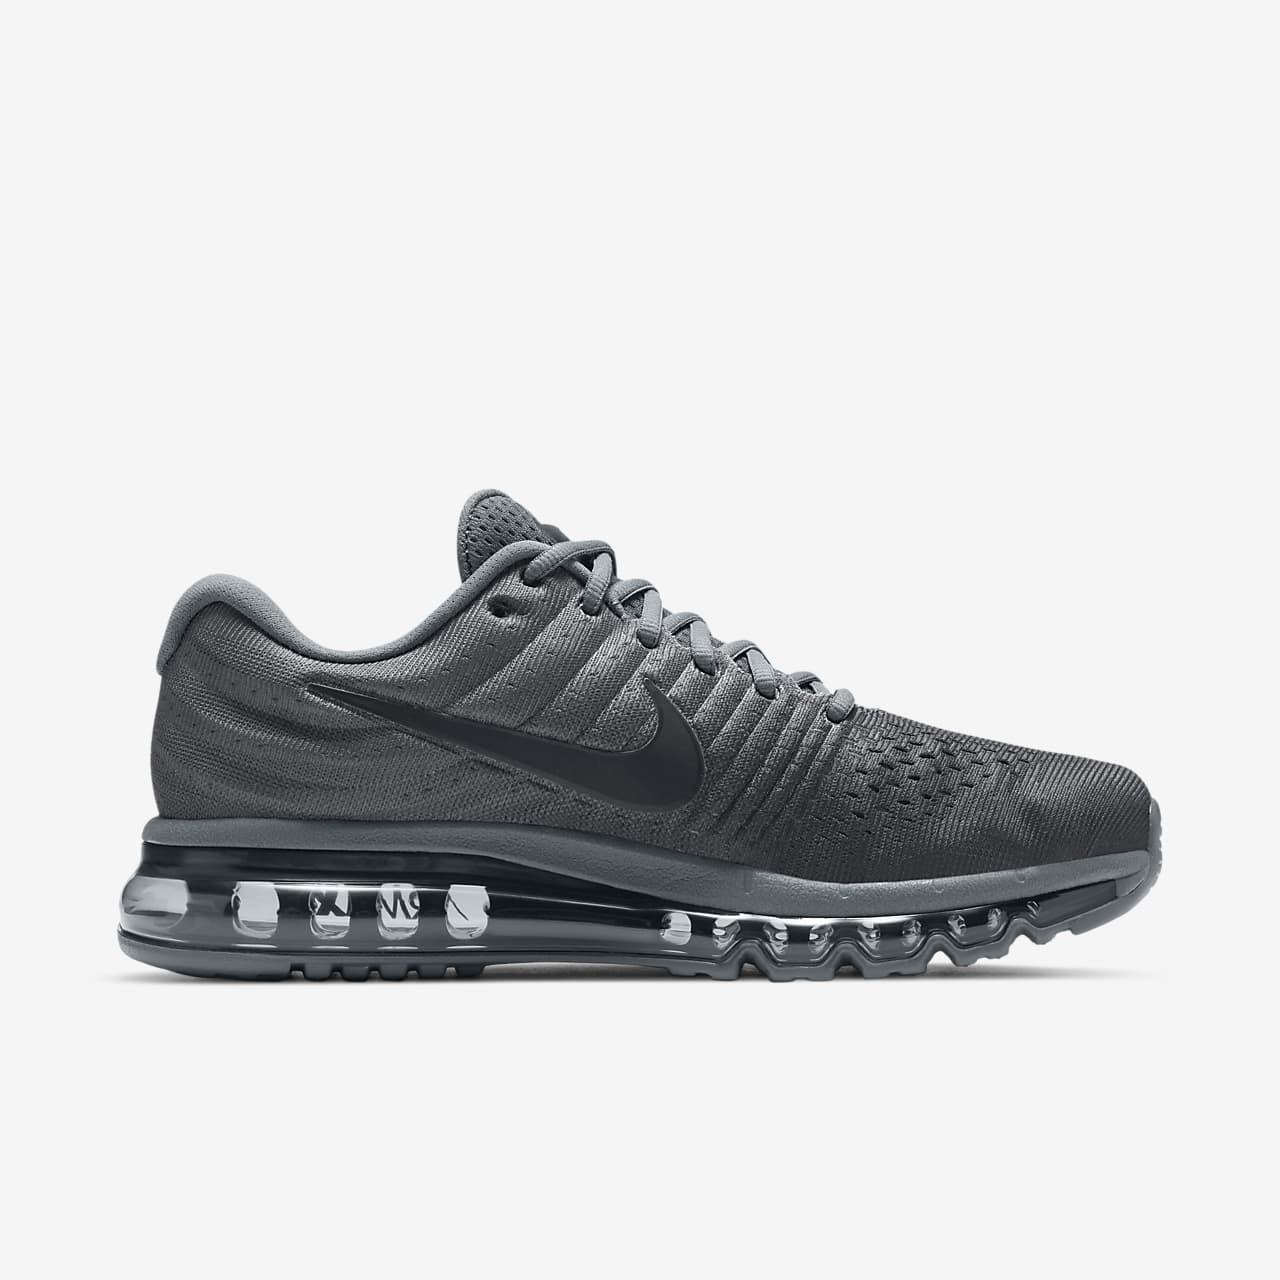 2a7abf0f50b9 Nike Air Max 2017 Men s Shoe. Nike.com